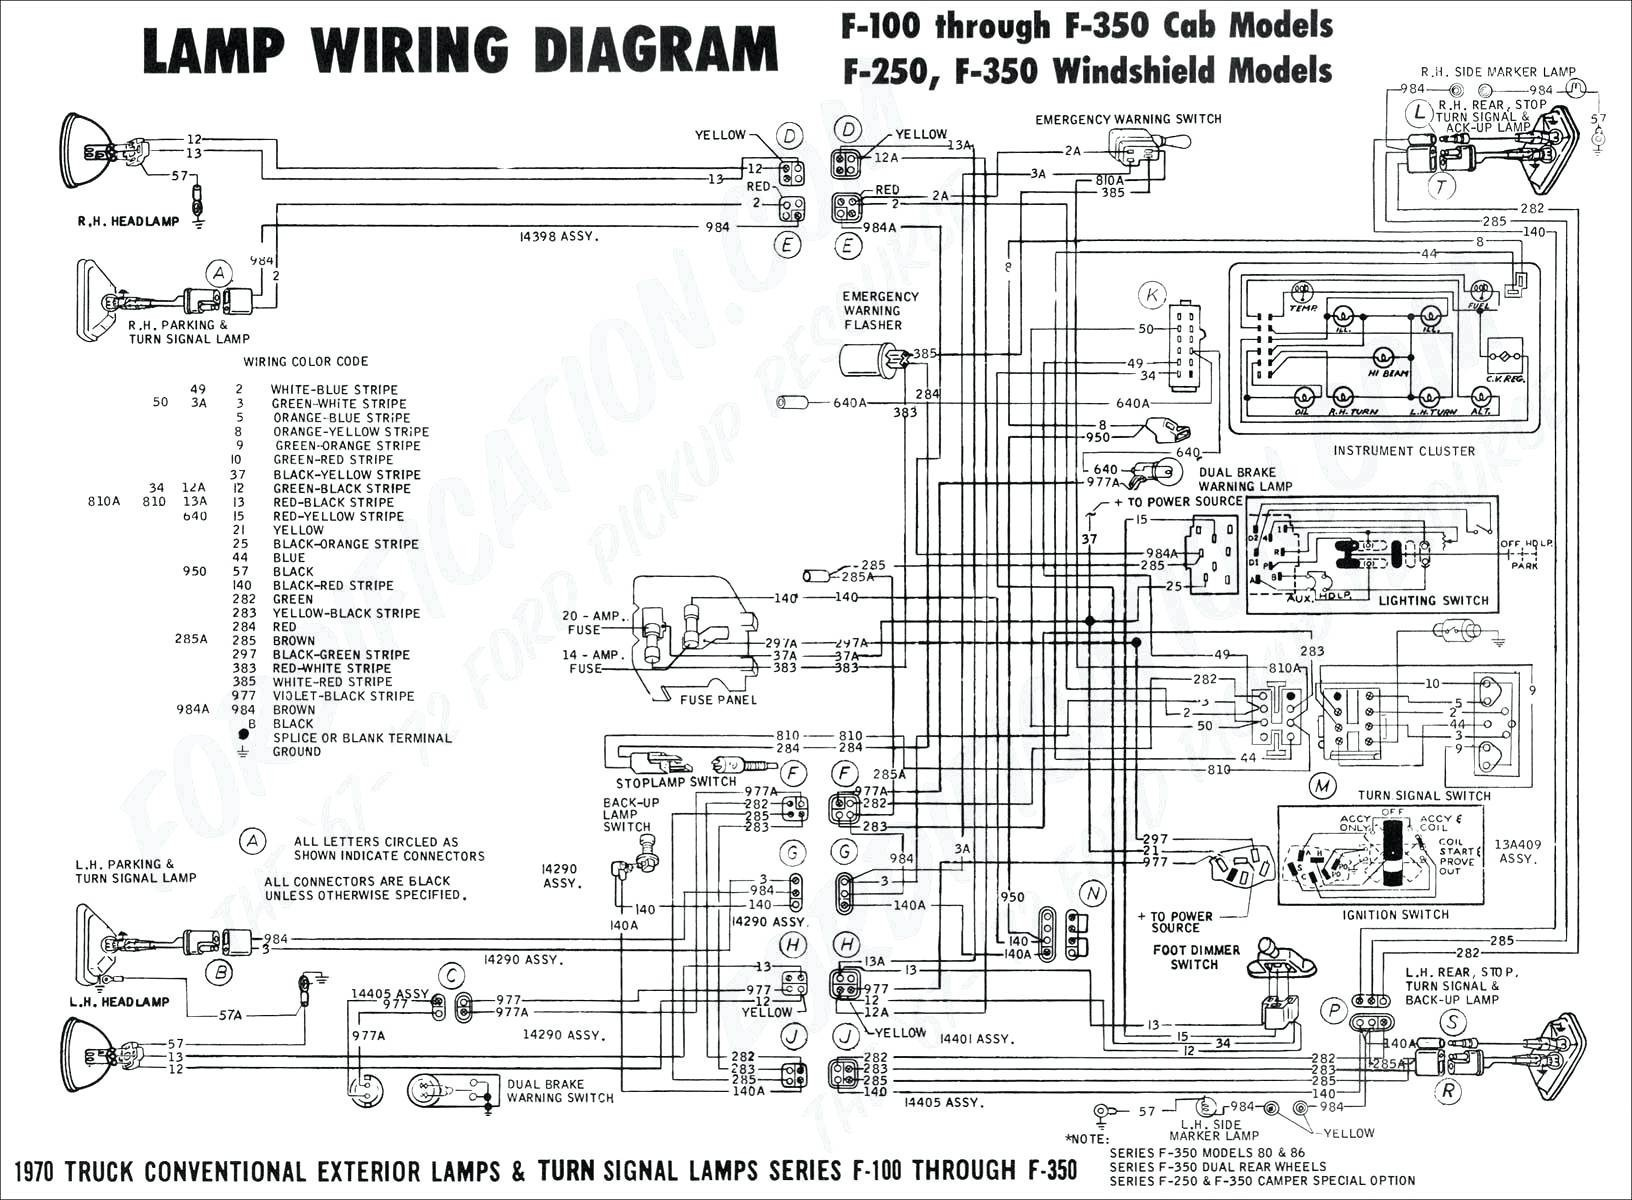 2002 Yamaha R1 Integrated Tail Light Diagram Awesome